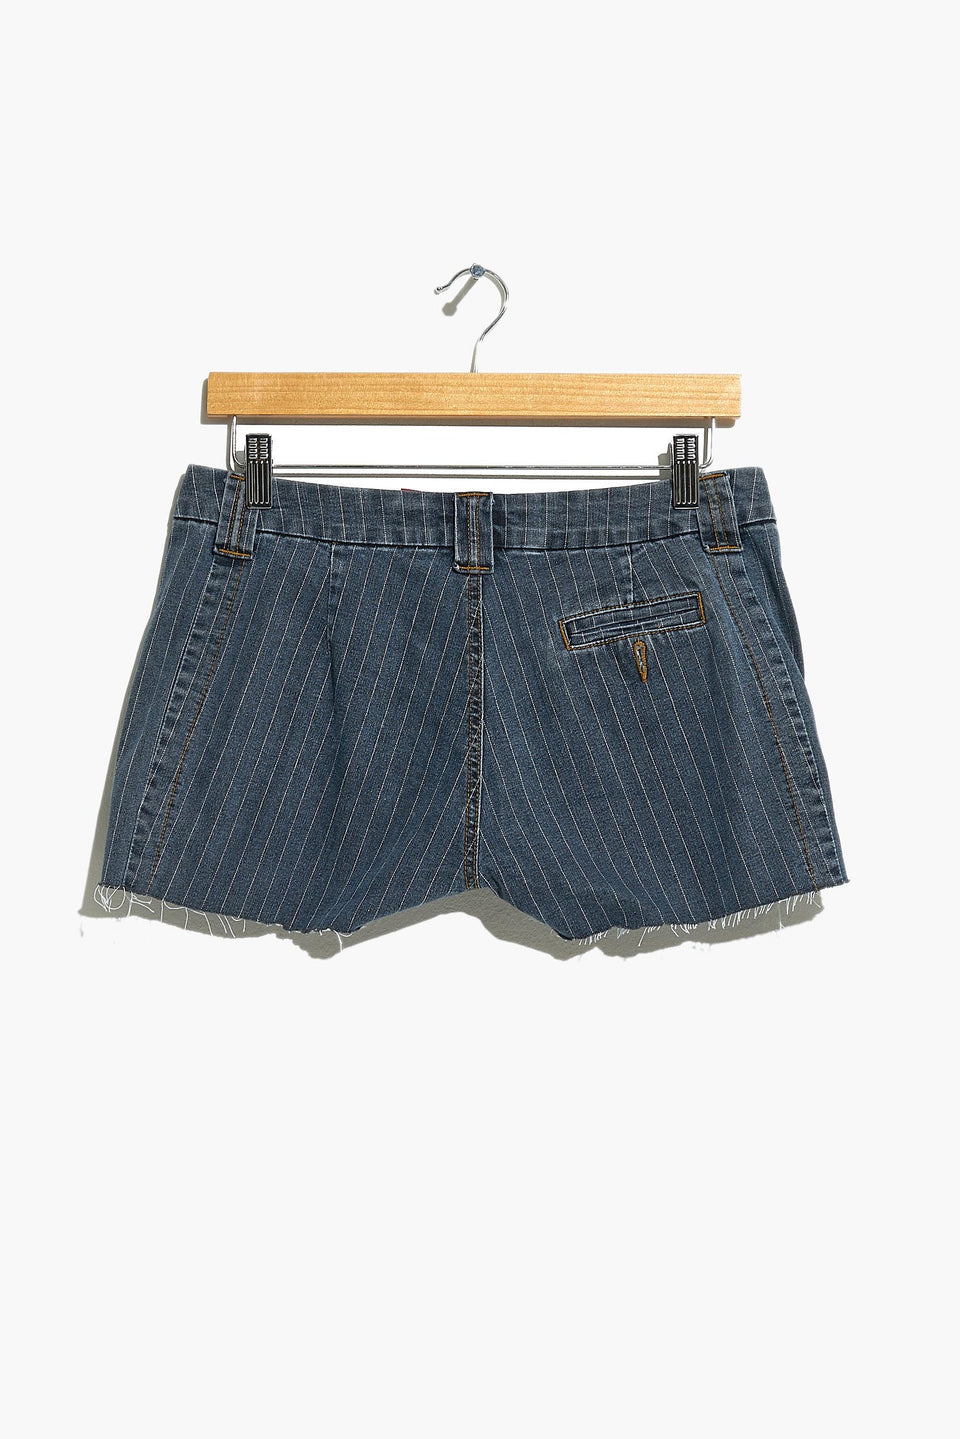 FISHBONE denim shorts